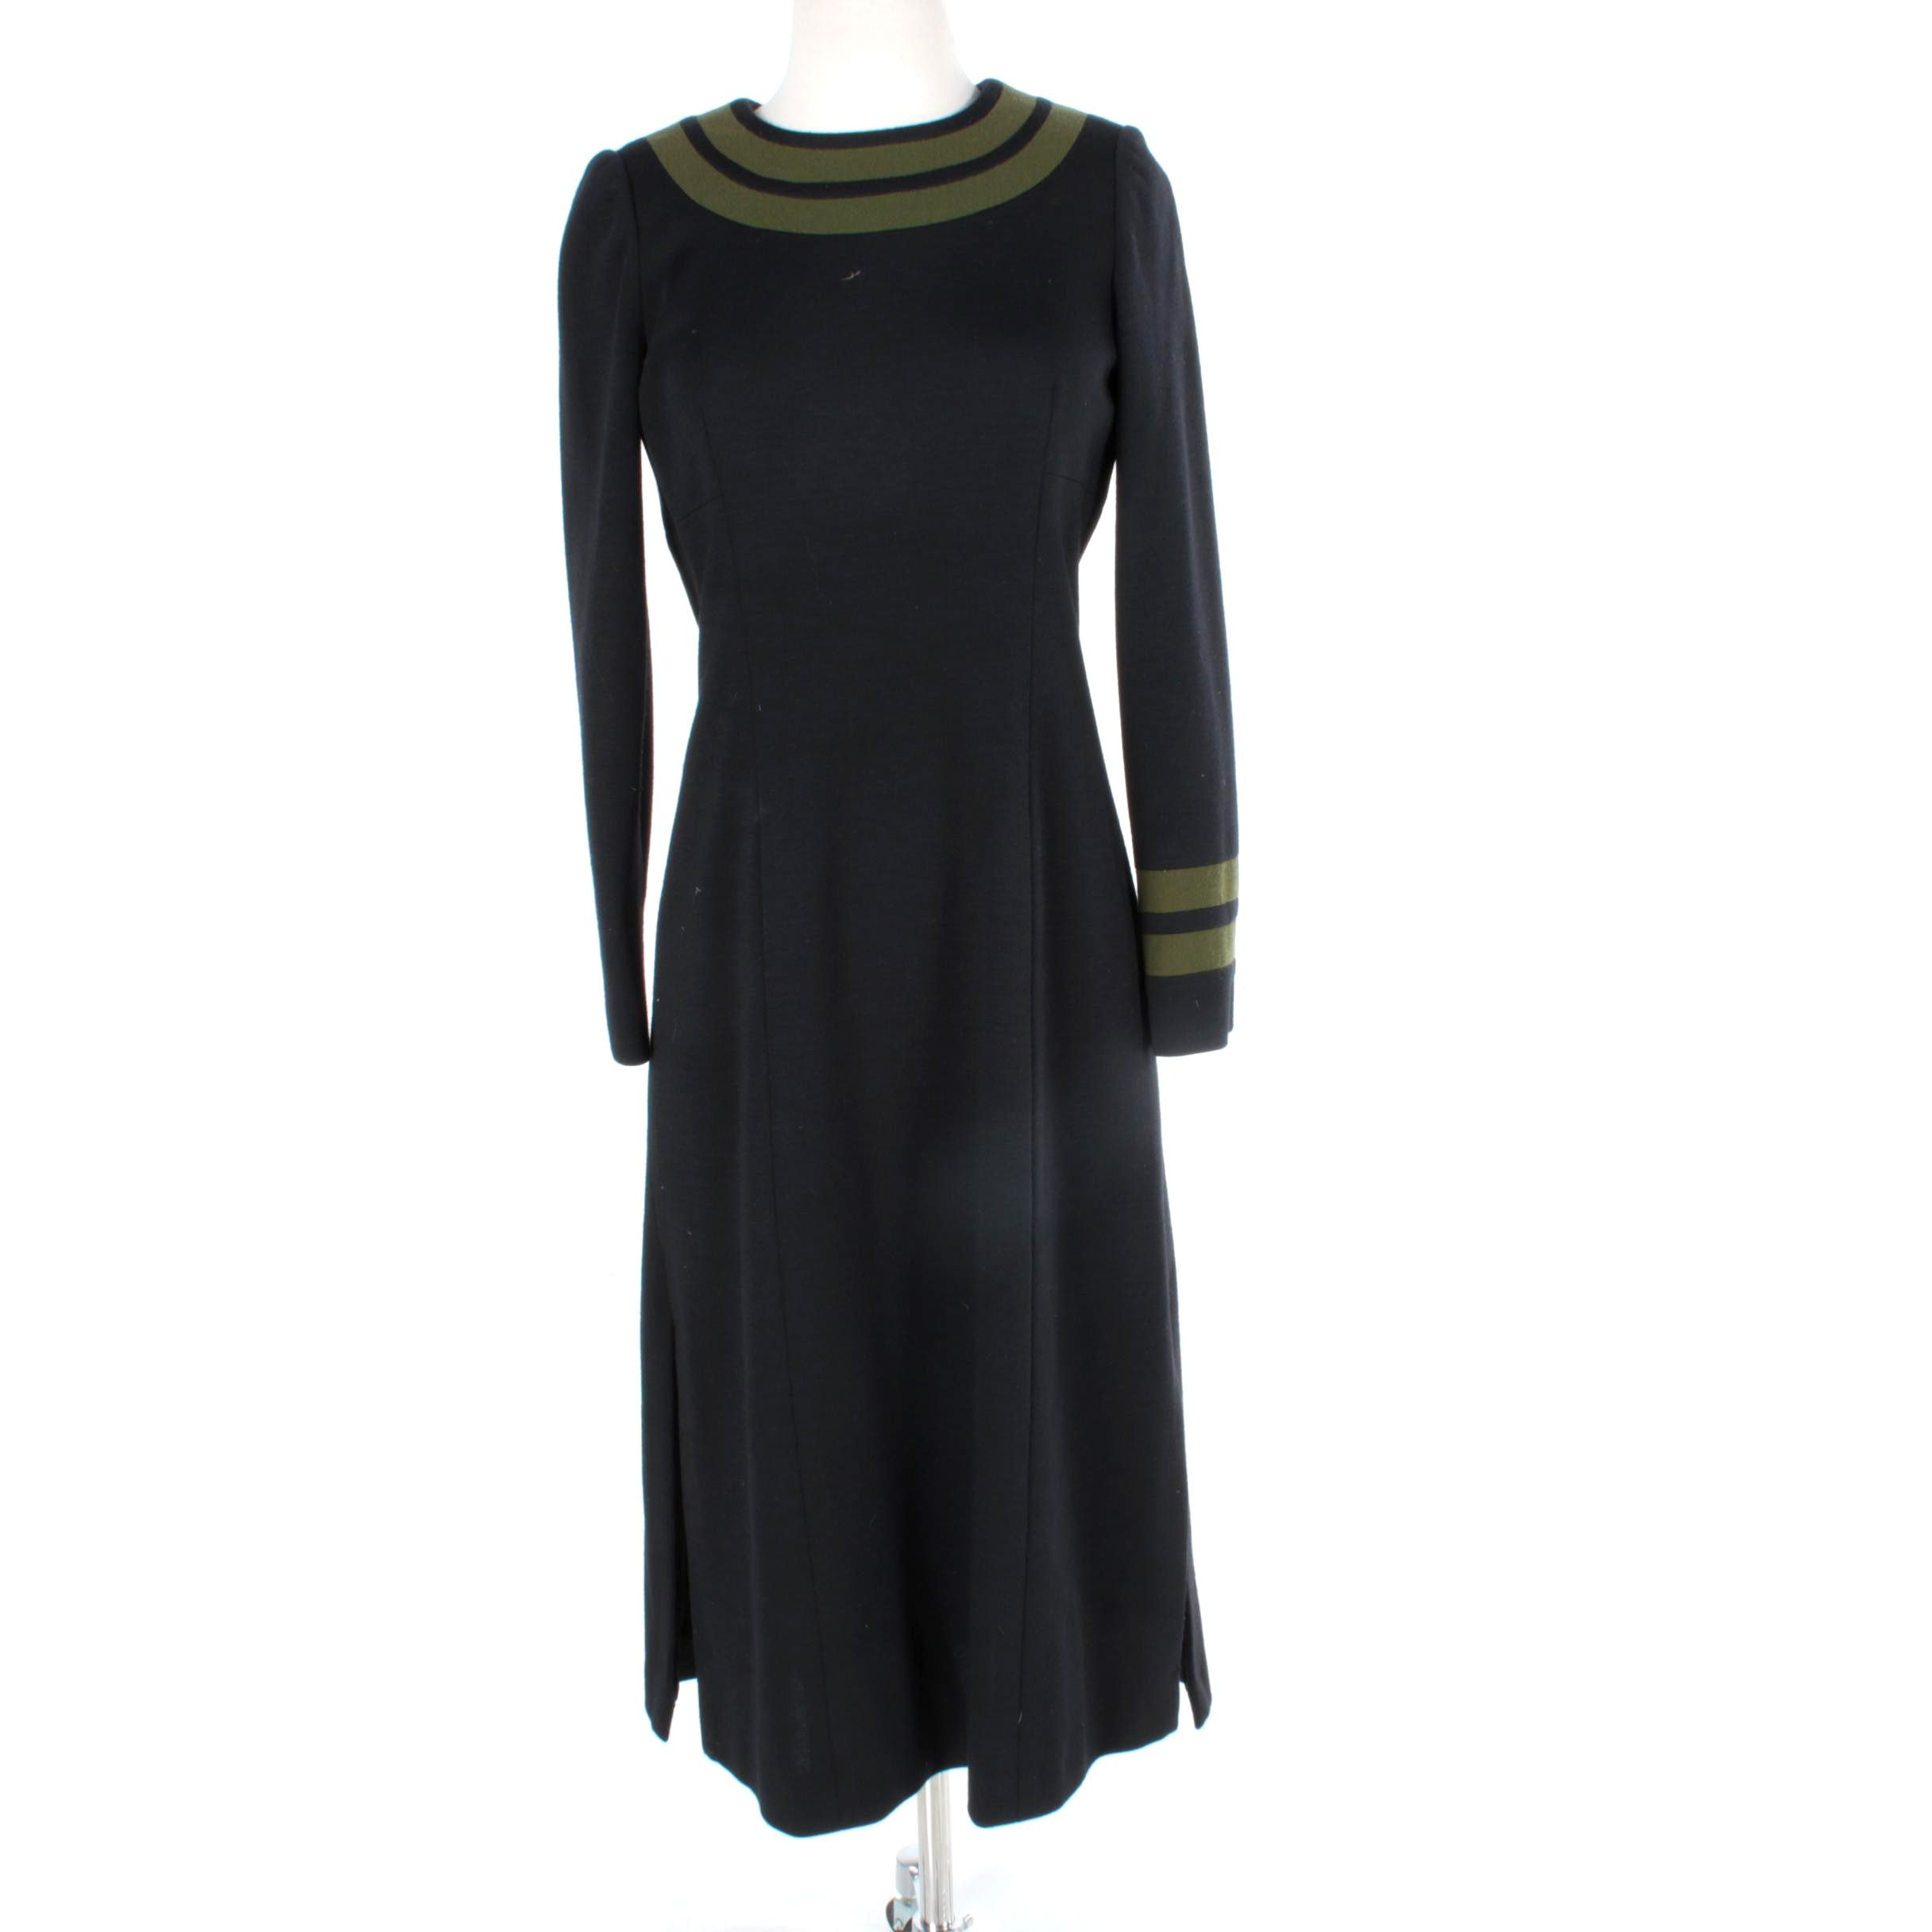 Vintage Cardinali Wool Dress